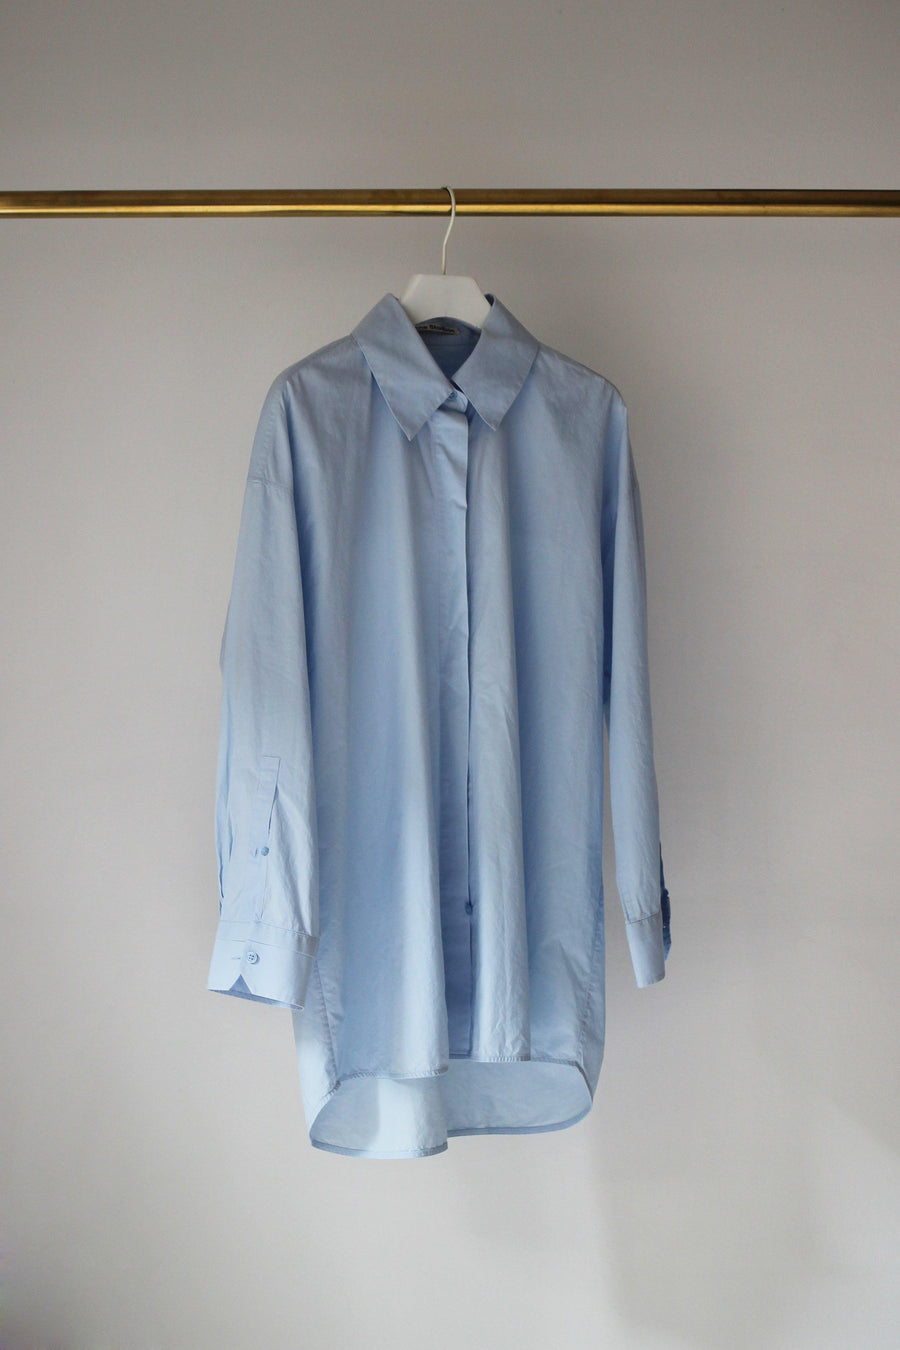 ACNE STUDIOS Shirt  Blouse - The Good Store Berlin